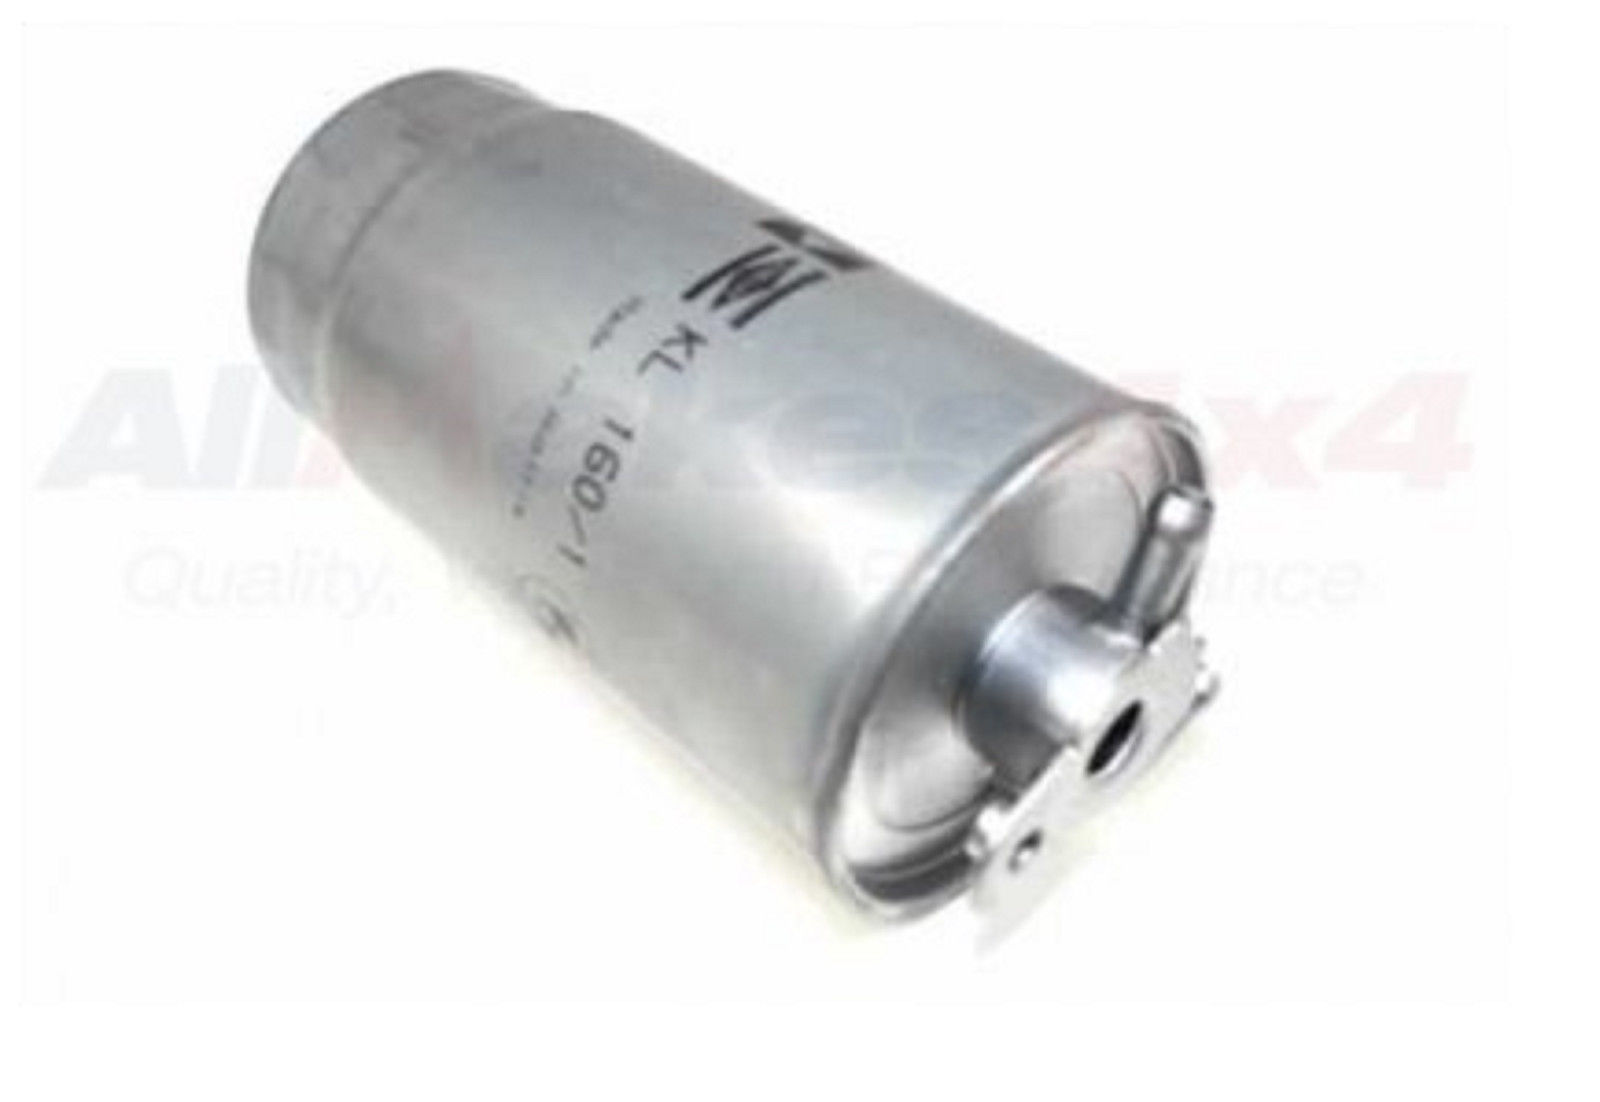 Land Rover Range 03-09 Fuel Filter Diesel and 26 similar items. S l1600